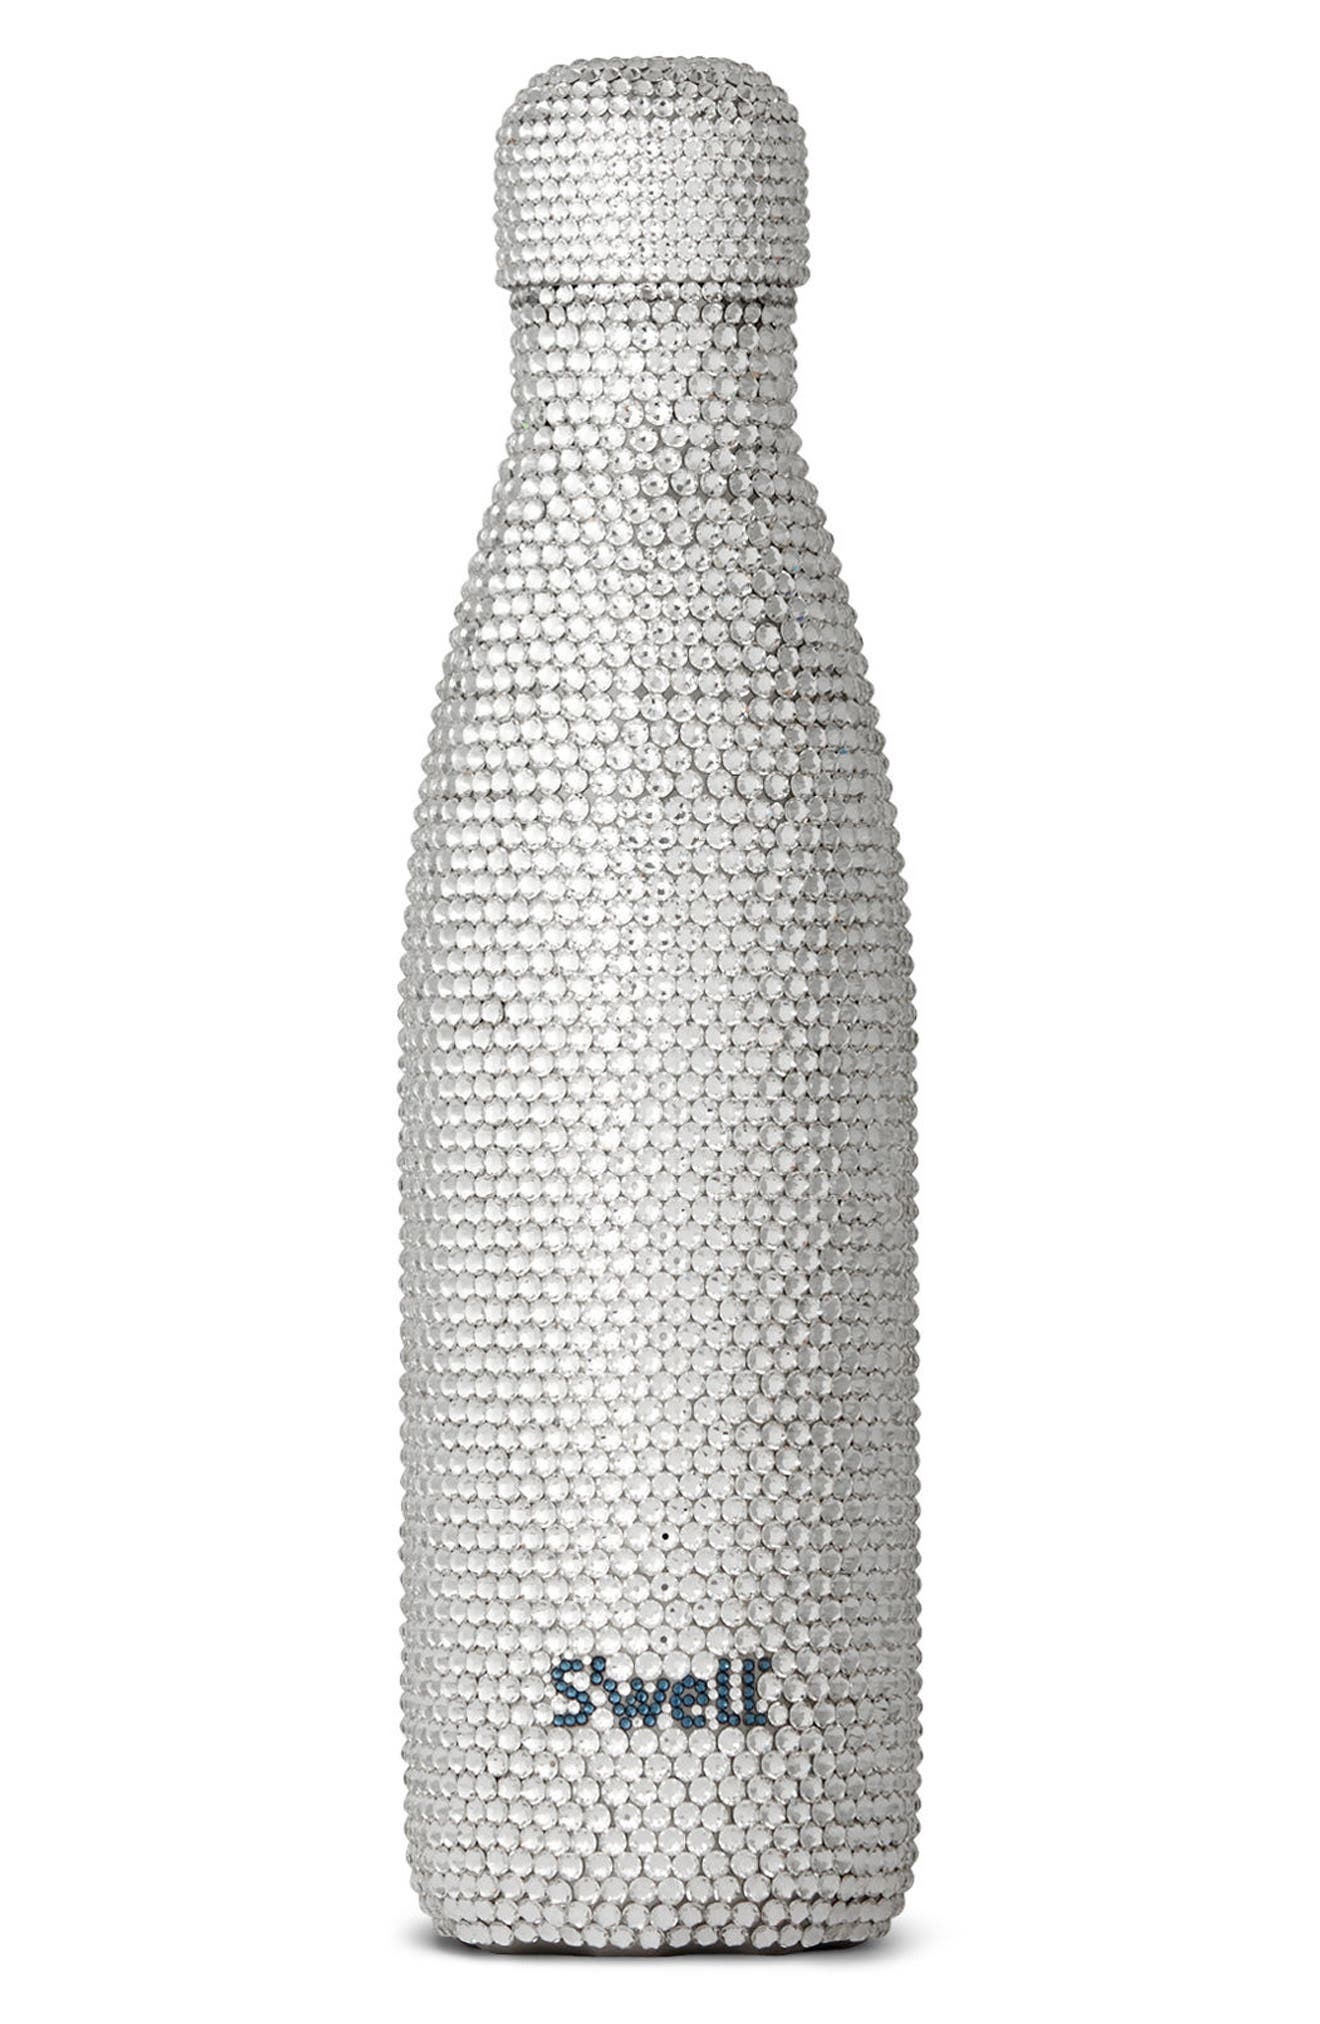 Alina Swarovski Crystal Insulated Stainless Steel Water Bottle,                         Main,                         color, Alina